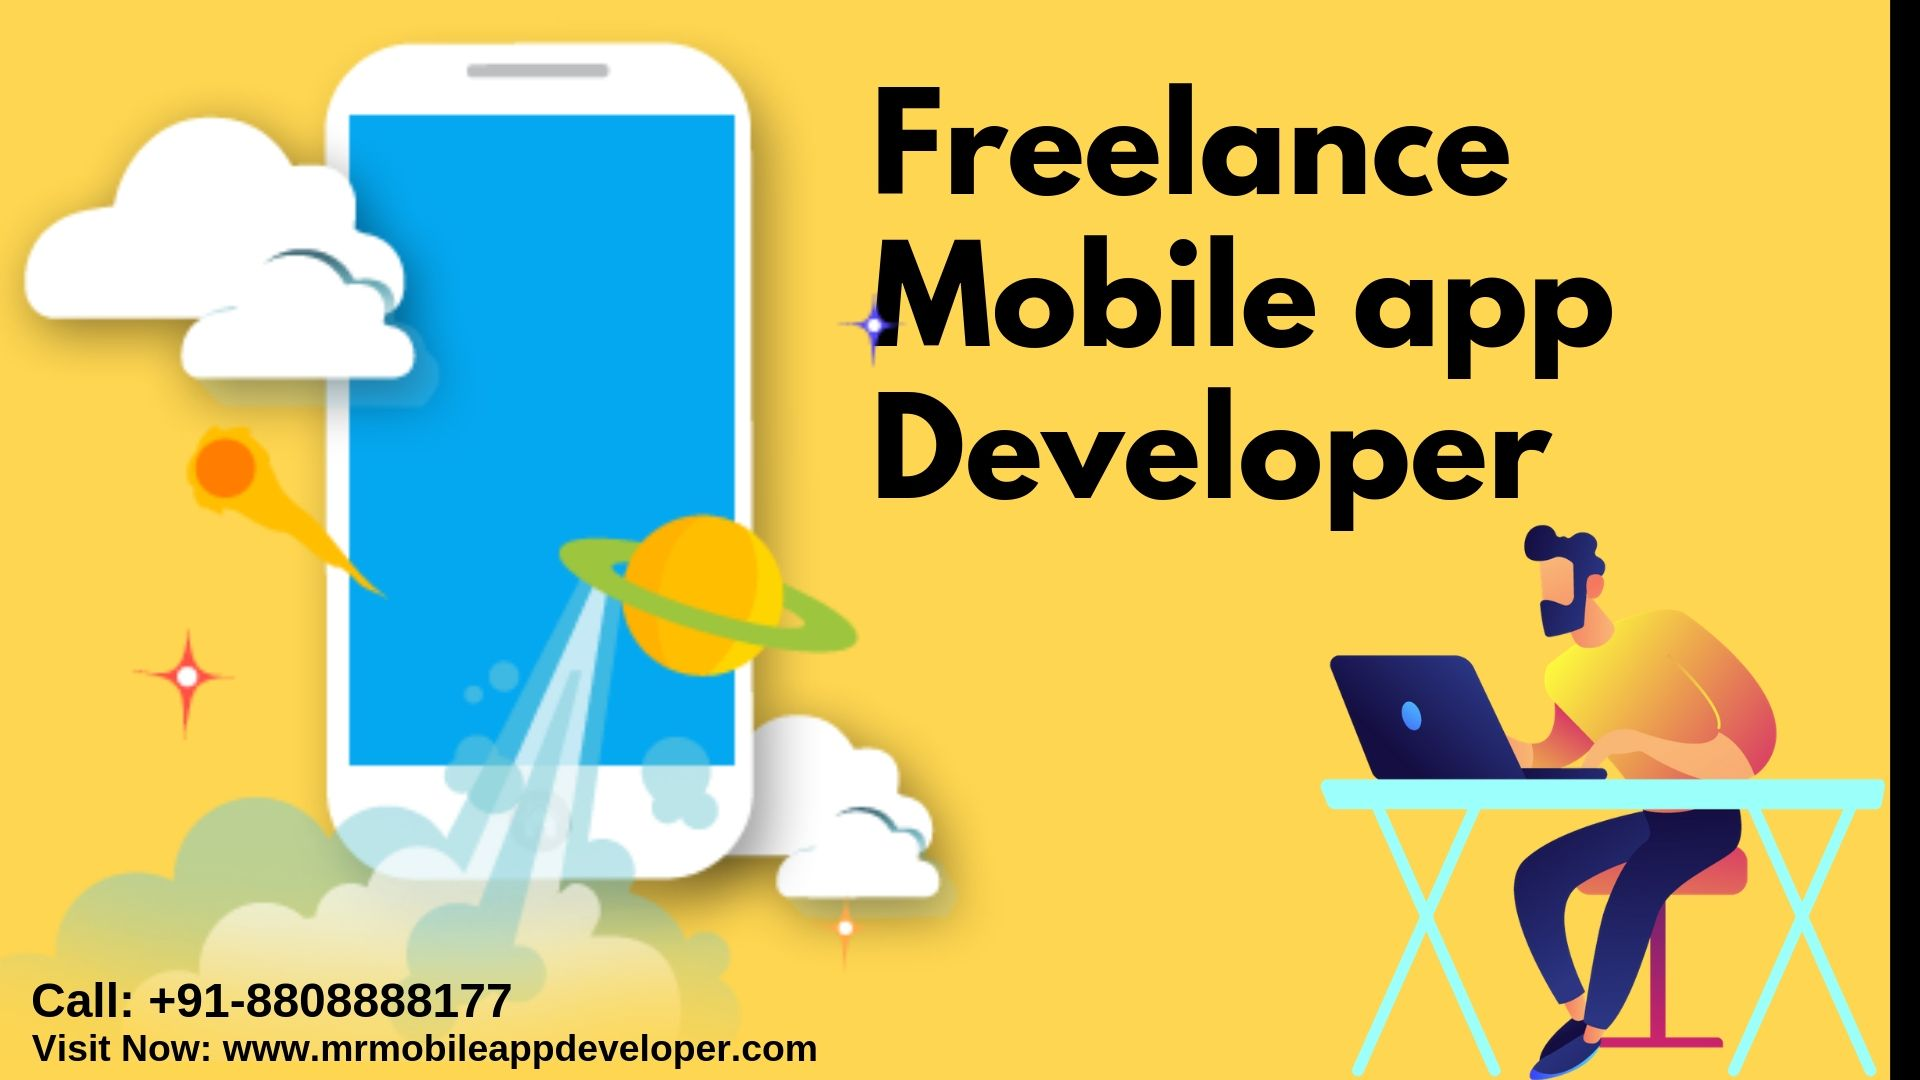 Freelance Mobile App Developer Hire Freelance Mobile App Developer Mobile App Development Mobile App Android App Development